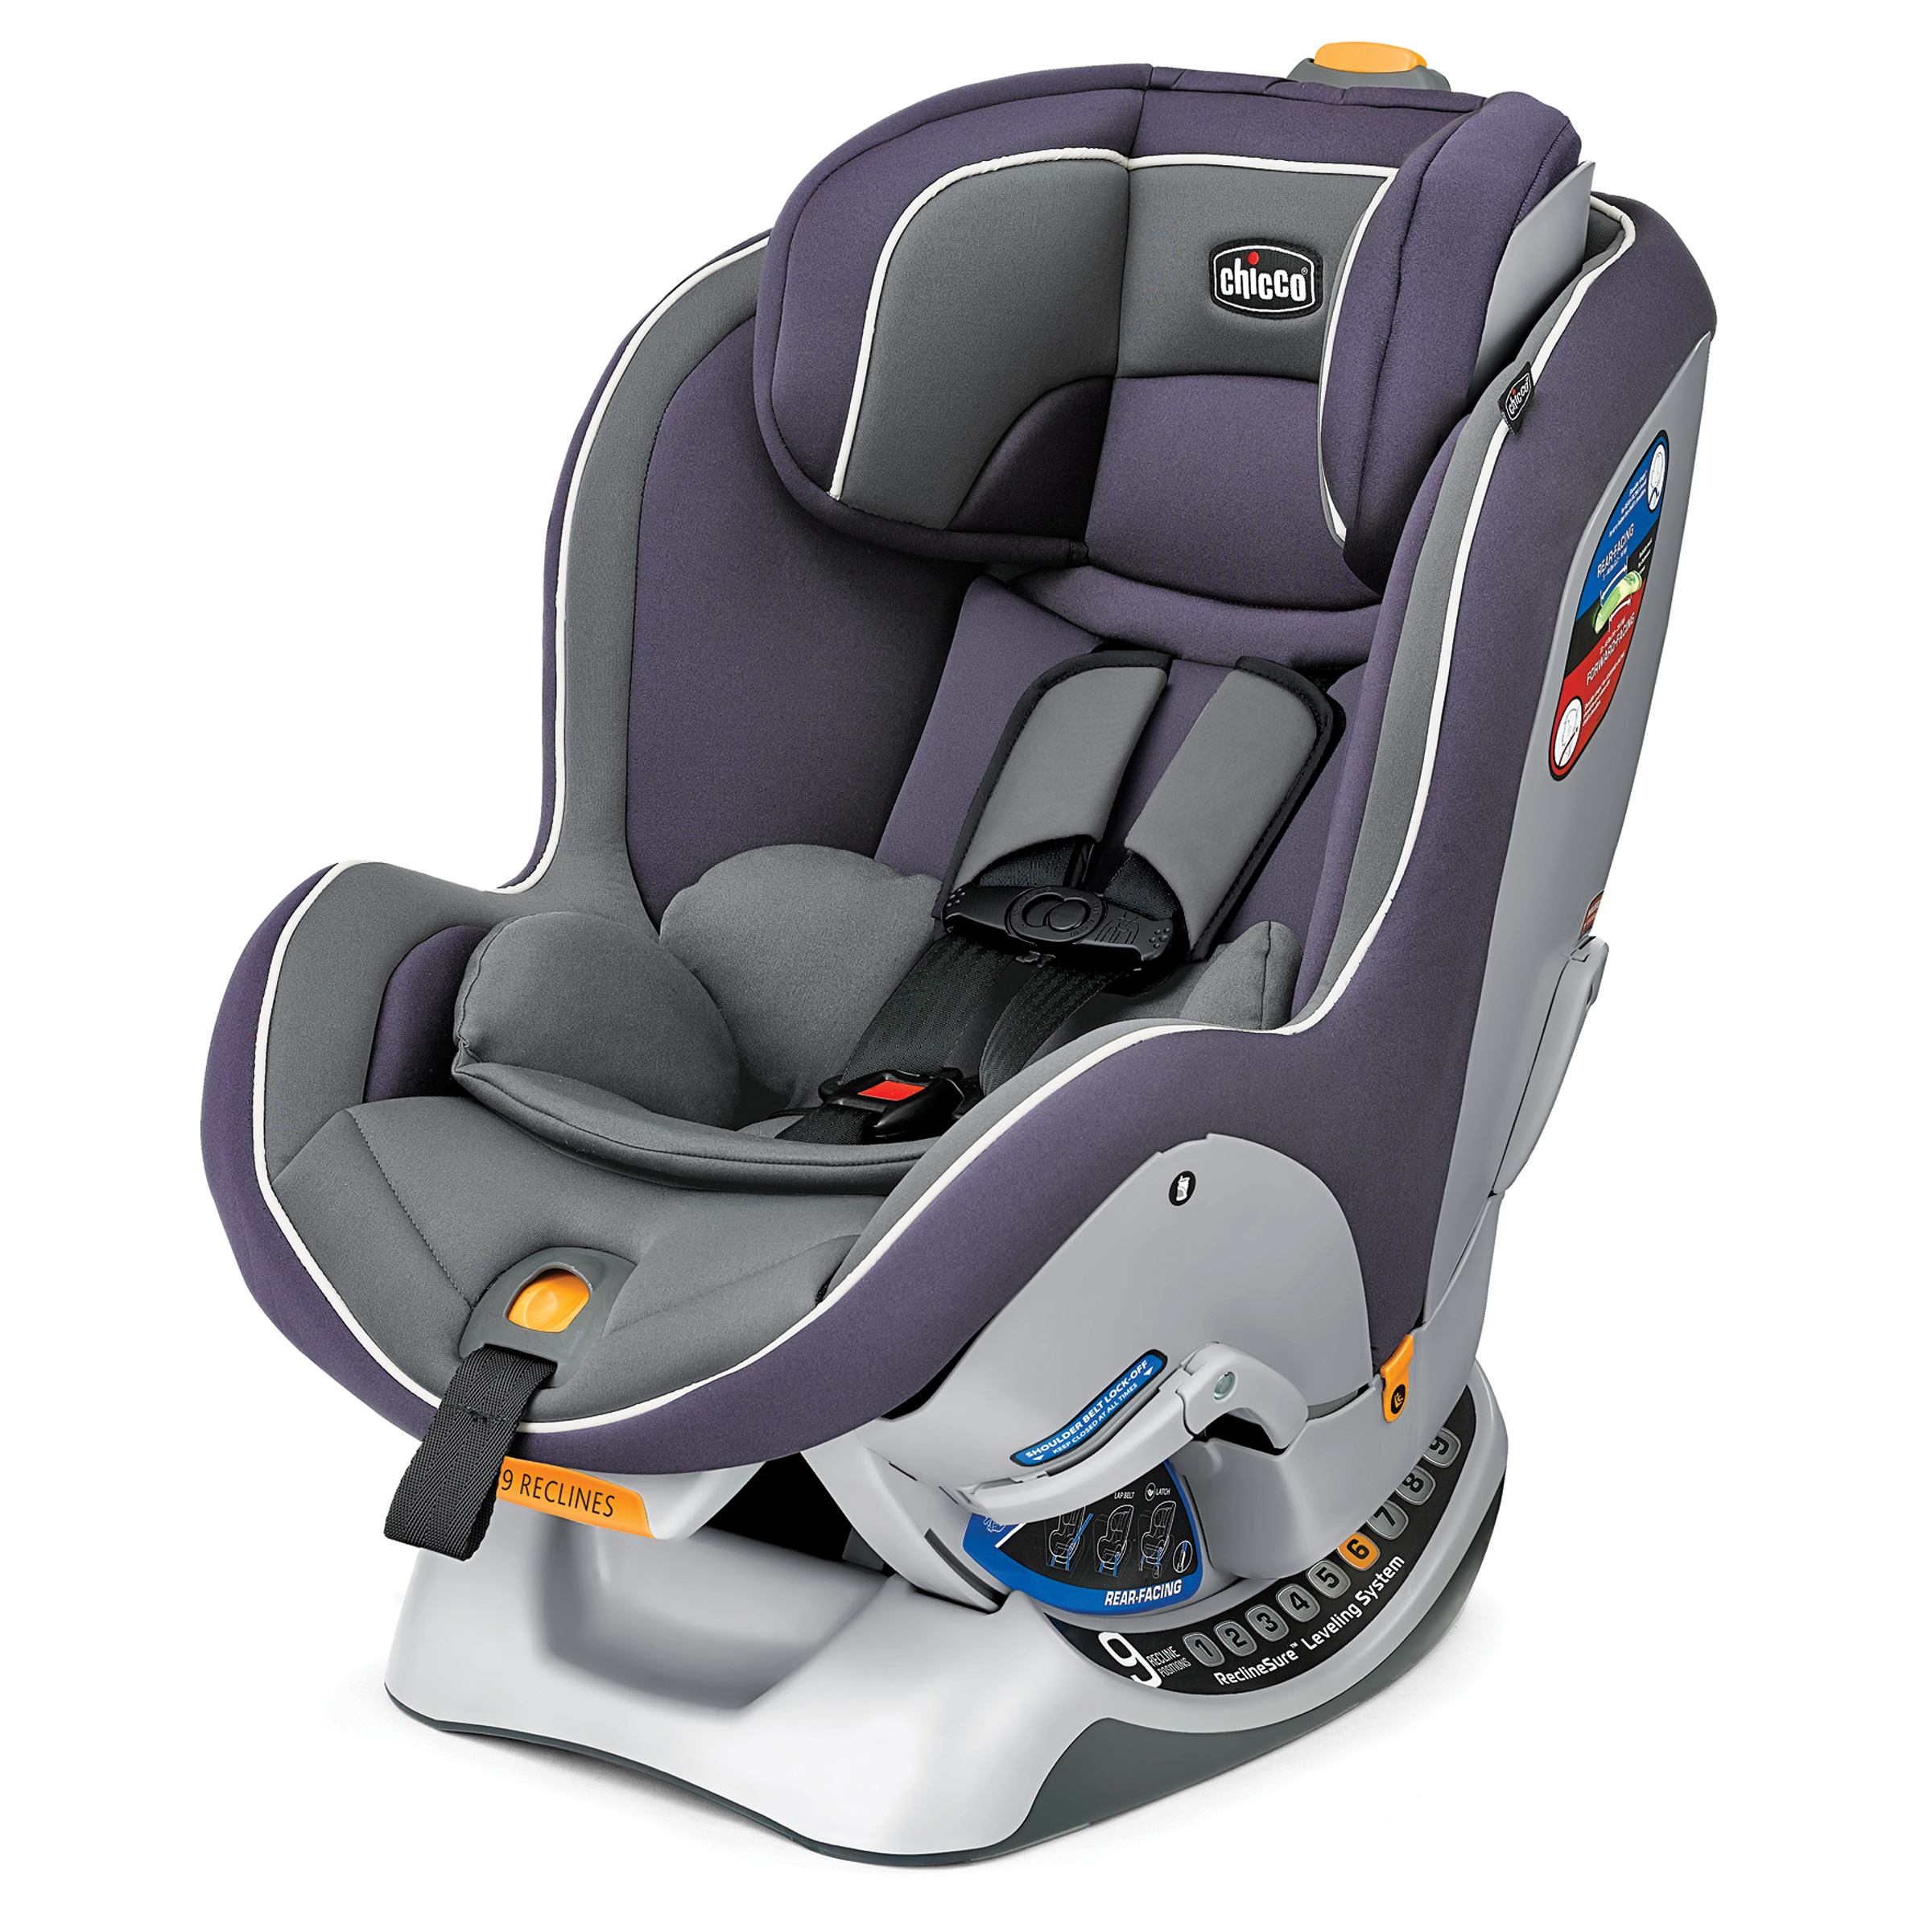 Car Seat Safety Made Easy With The Chicco Nextfit Car Seat